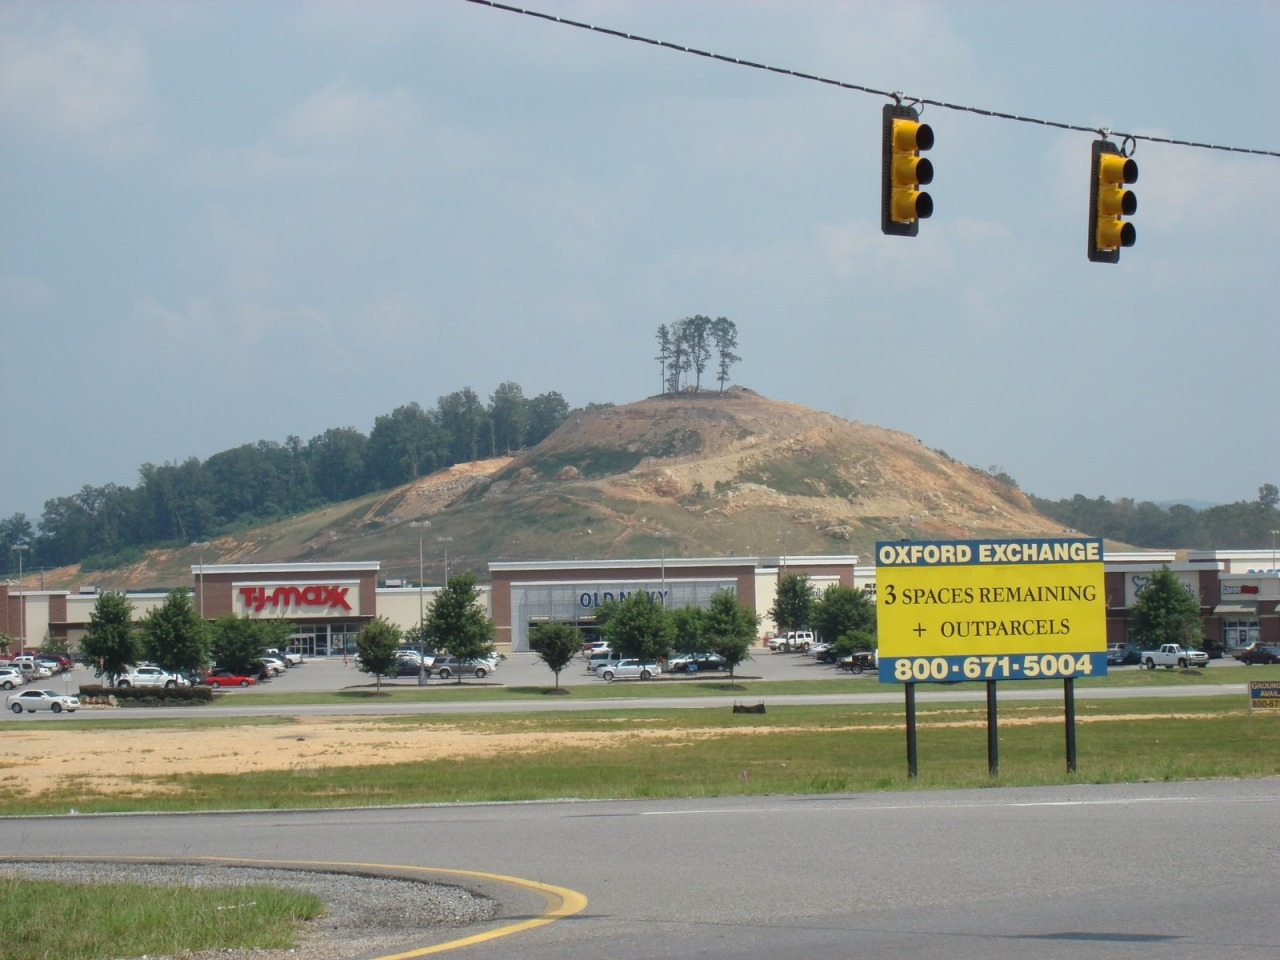 "mia-the-wonder-slut:   Alabama city destroying ancient Indian mound for Sam's Clubsouthernstudies.org City leaders in Oxford, Ala. have approved the destruction of a 1,500-year-old Native American ceremonial mound and are using the dirt as fill for a new Sam's Club, a retail warehouse store operated by Wal-Mart.{C}A University of Alabama archaeology report commissioned by the city found that the site was historically significant as the largest of several ancient stone and earthen mounds throughout the Choccolocco Valley. But Oxford Mayor Leon Smith — whose campaign has financial connections to firms involved in the $2.6 million no-bid project — insists the mound is not man-made and was used only to ""send smoke signals.""  Oh Jesus fucking Christ. Stop it. ""Smoke signals,"" seriously? Omg."